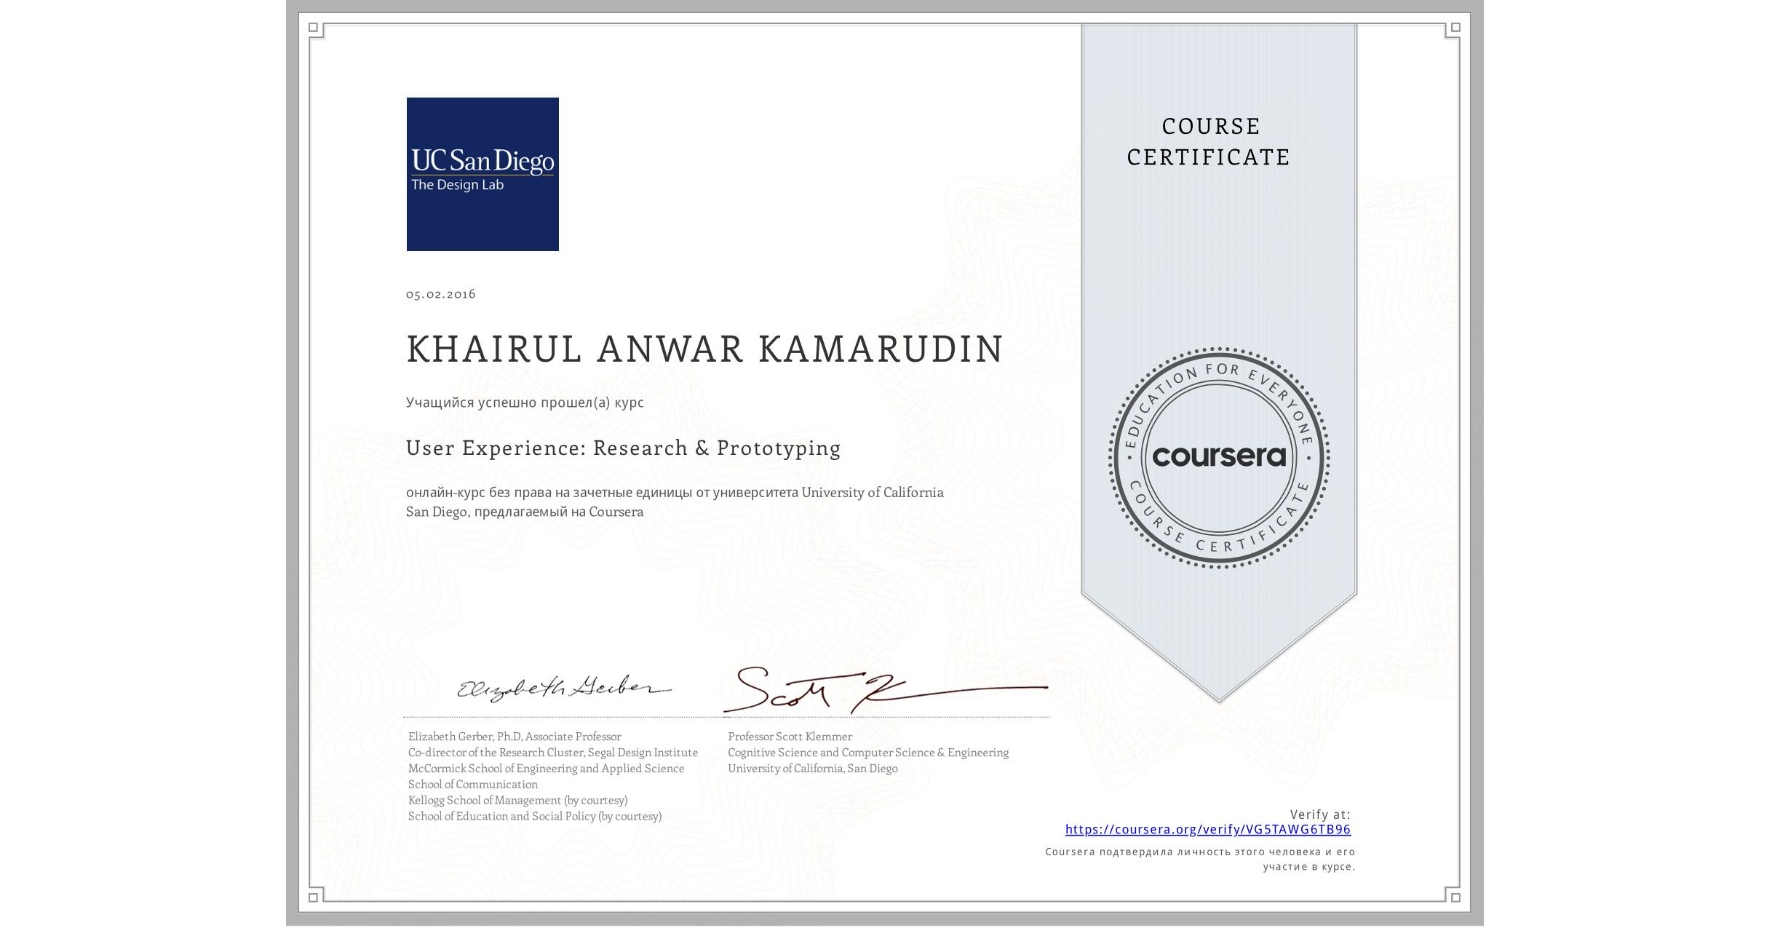 View certificate for KHAIRUL ANWAR  KAMARUDIN, User Experience: Research & Prototyping, an online non-credit course authorized by University of California San Diego and offered through Coursera